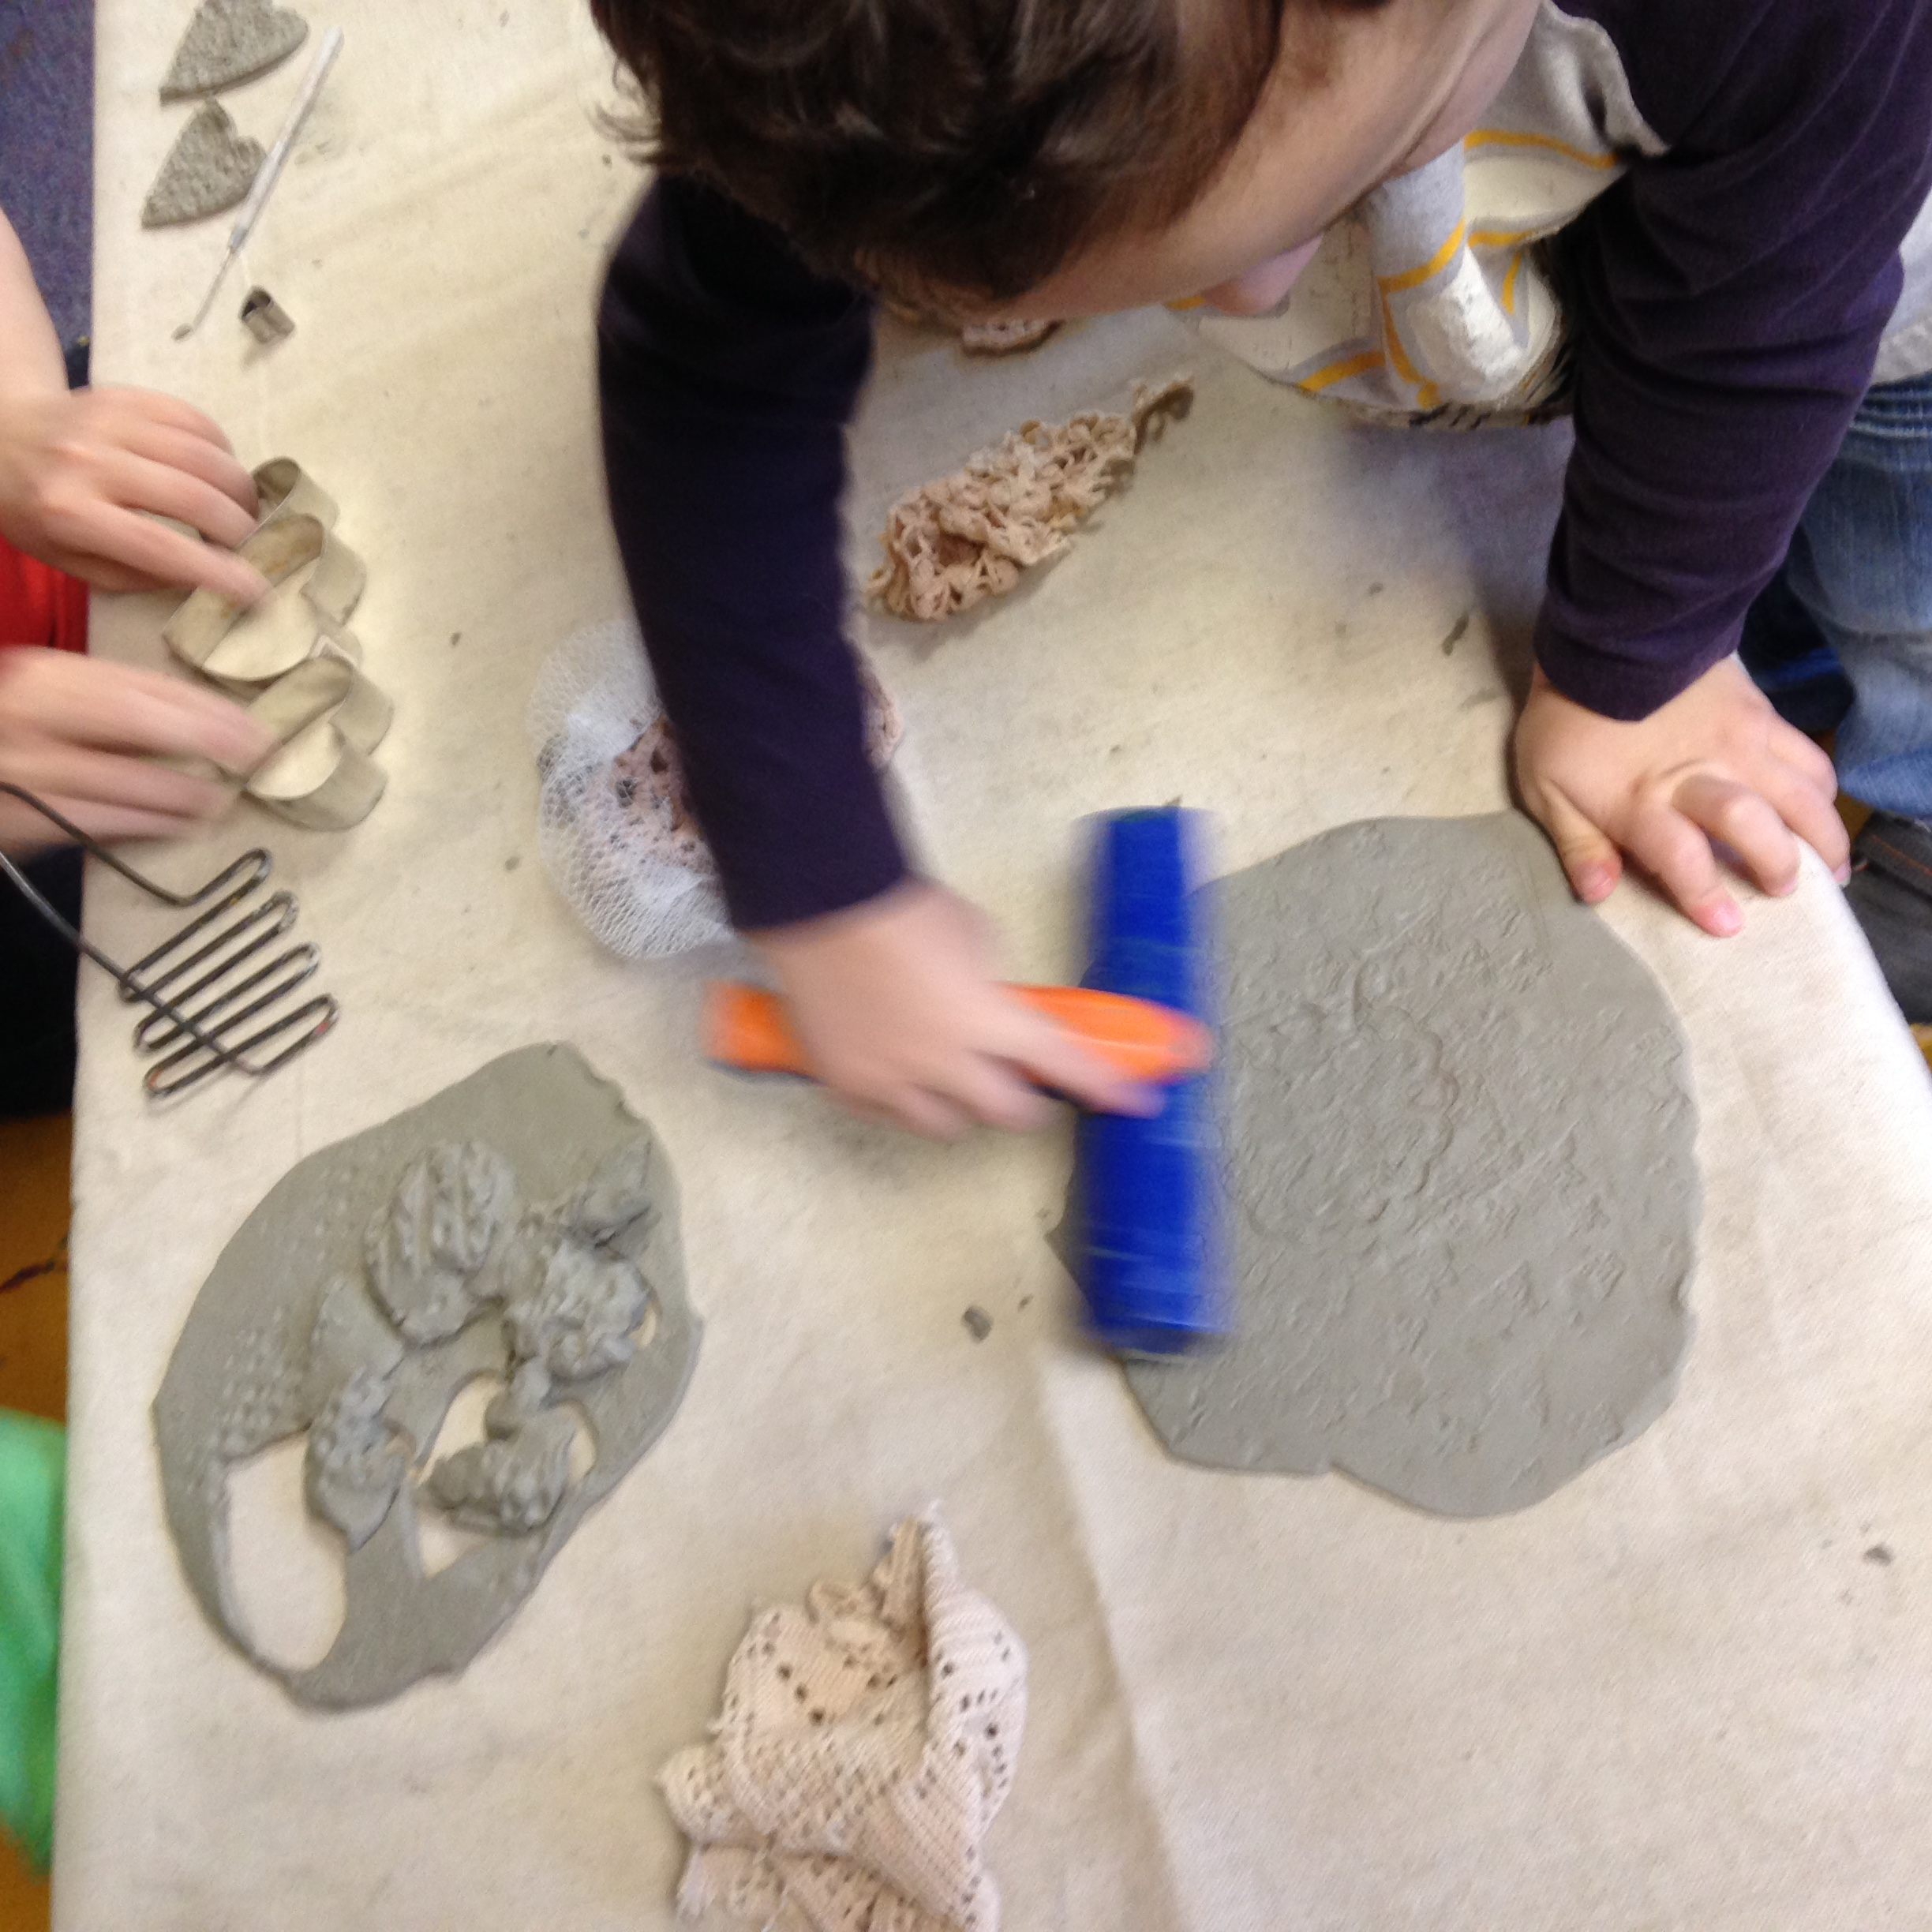 We used a wide variety of tools to impress textures into clay, exploring the effect of different tools.